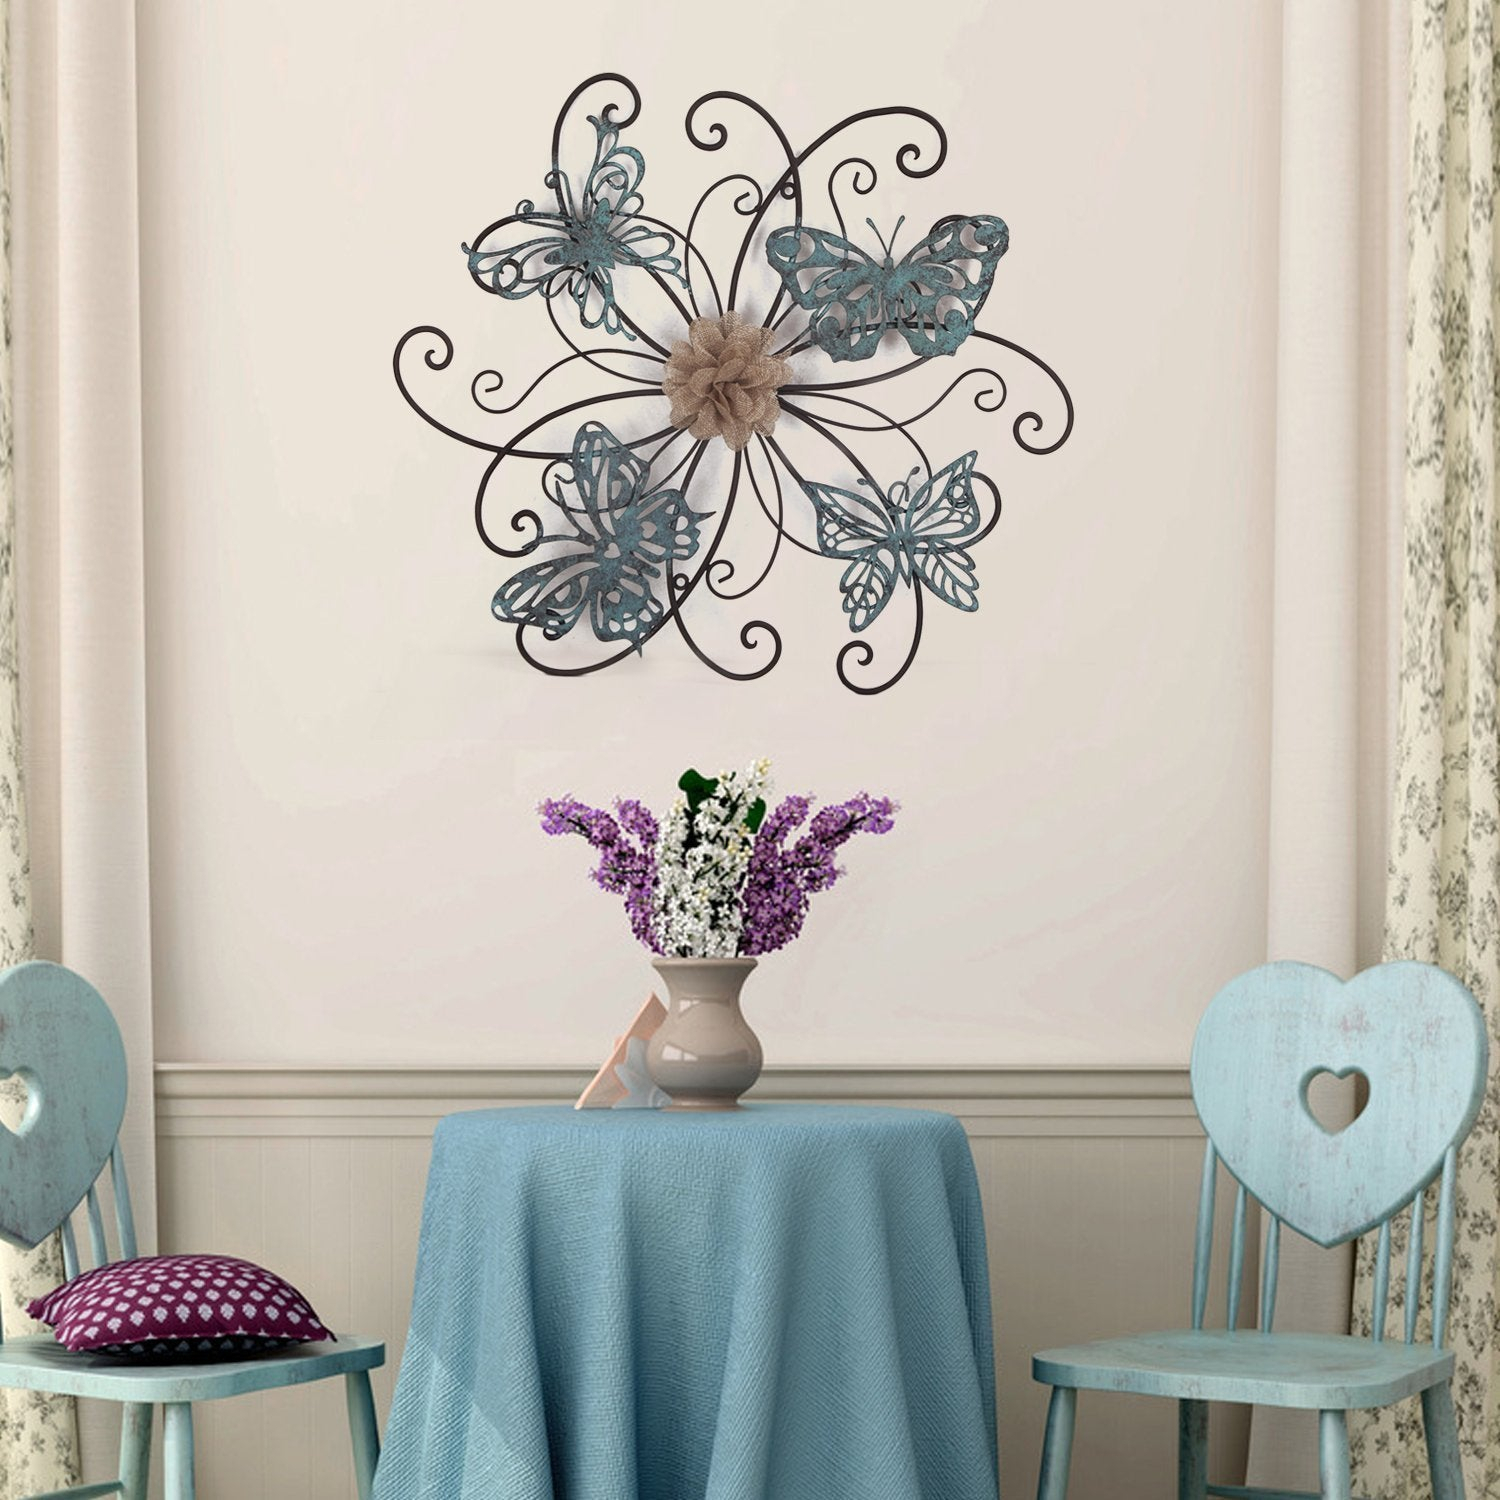 Details About Adeco Flower And Butterfly Urban Design Metal Wall Decor For Nature Home Art With Regard To Flower And Butterfly Urban Design Metal Wall Decor (View 7 of 30)